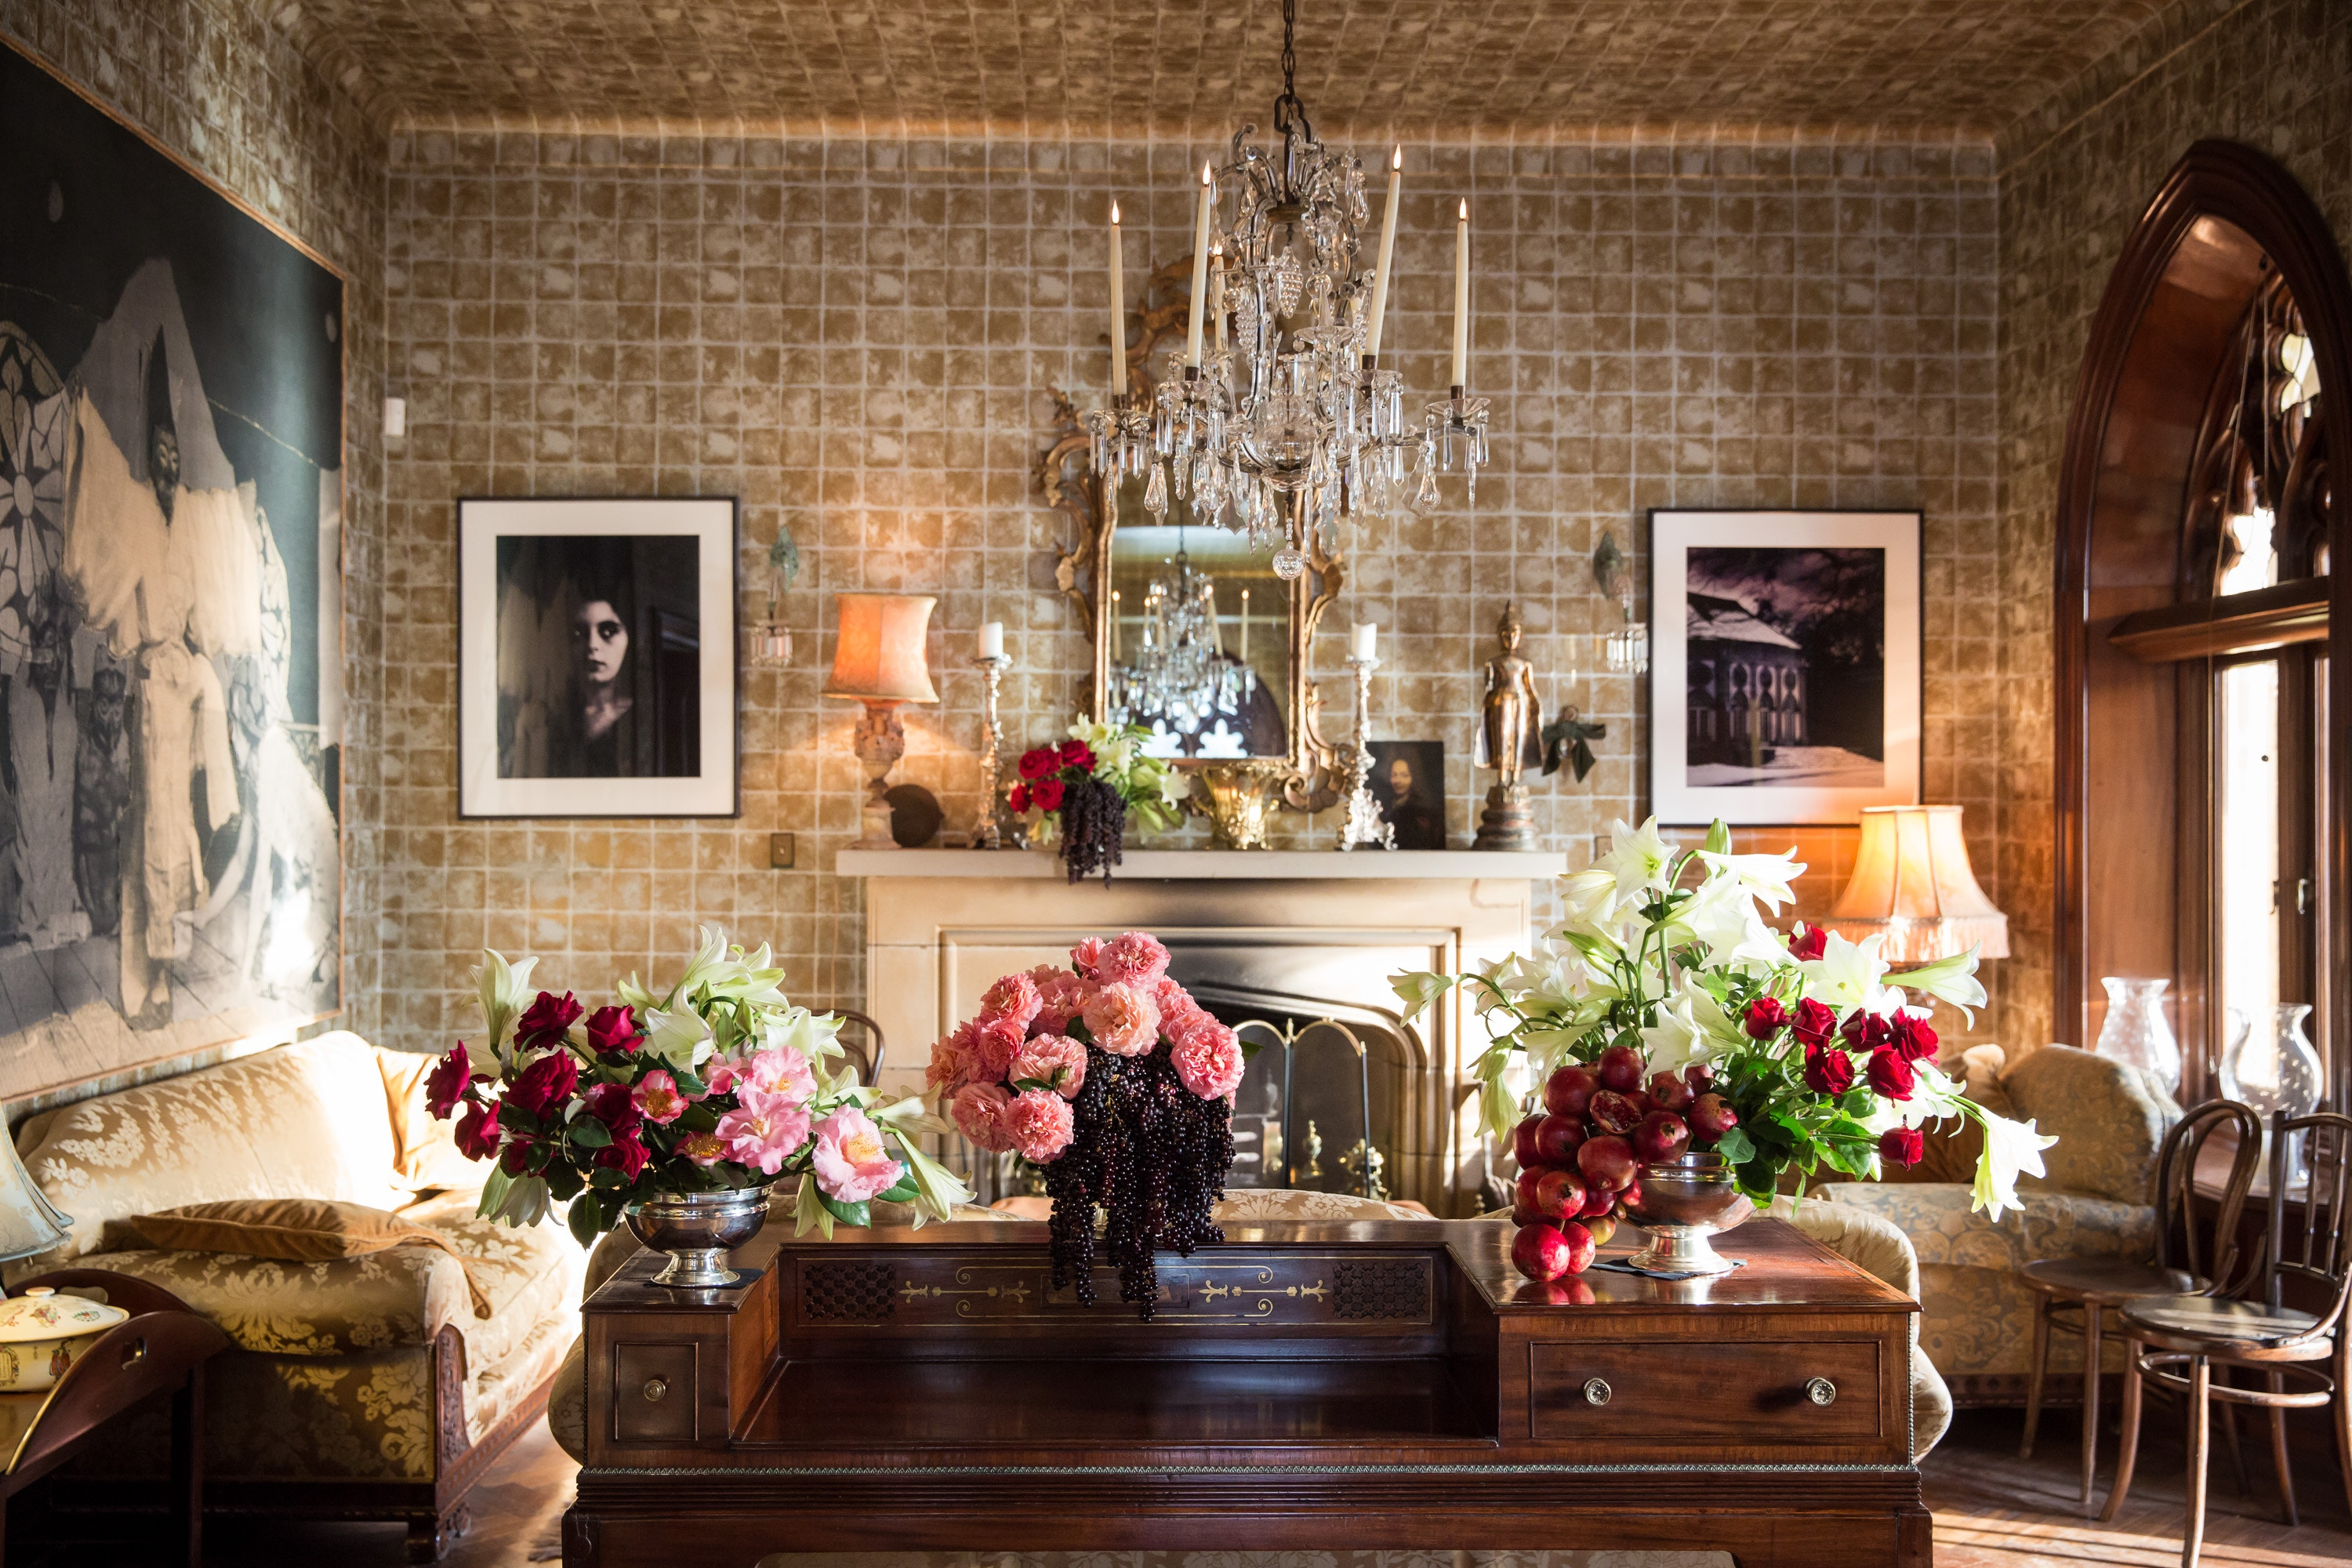 table with flowers and mantel